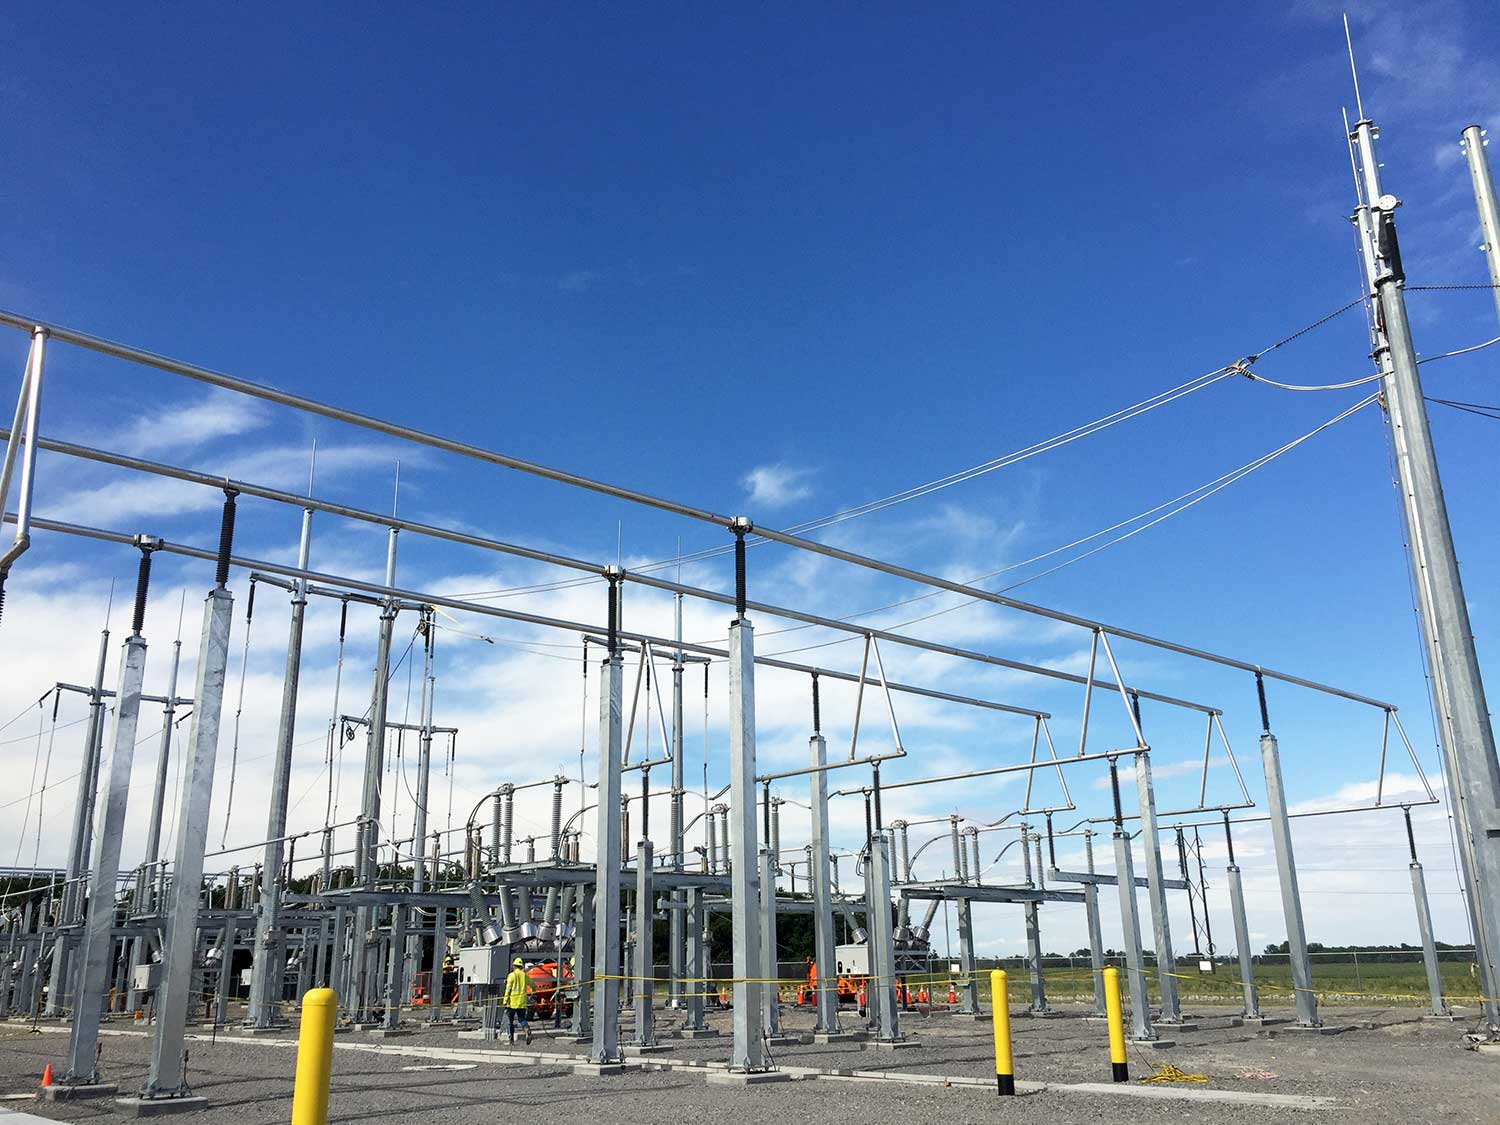 jonesboro_substation_construction_electric.jpg